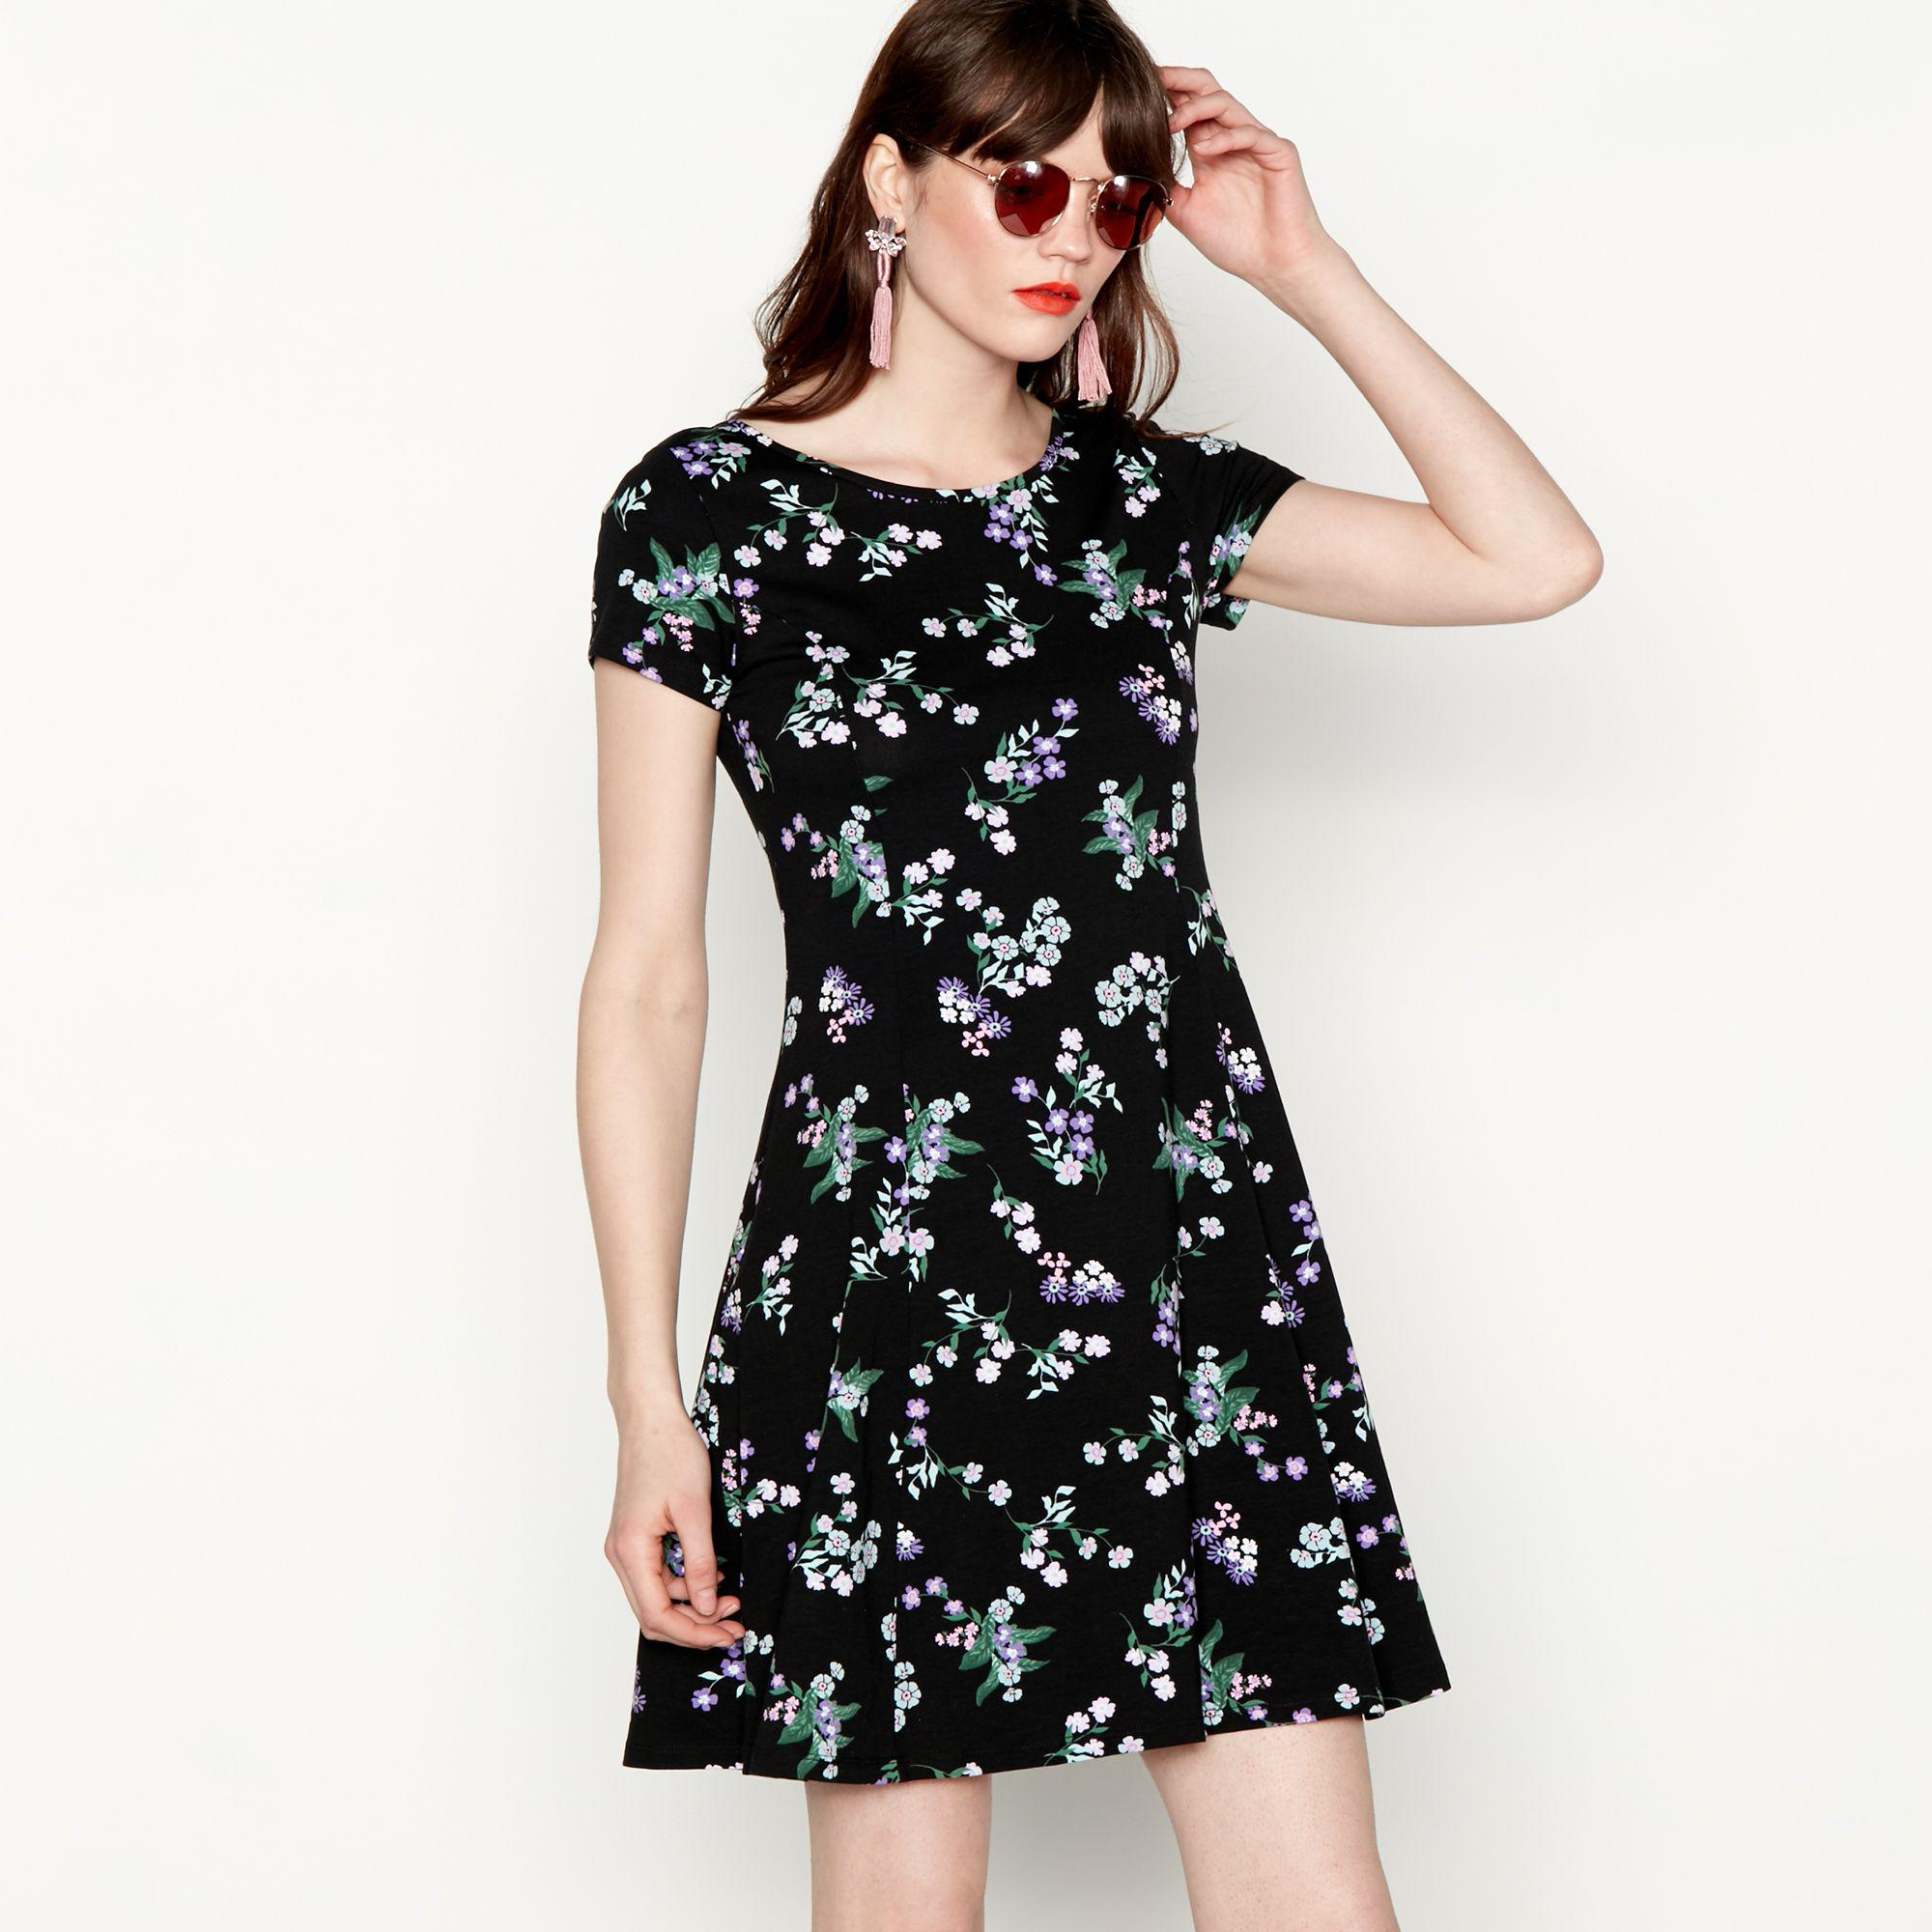 235d085a40 Red Herring Black Floral Print Cotton Blend Knee Length Skater Dress ...